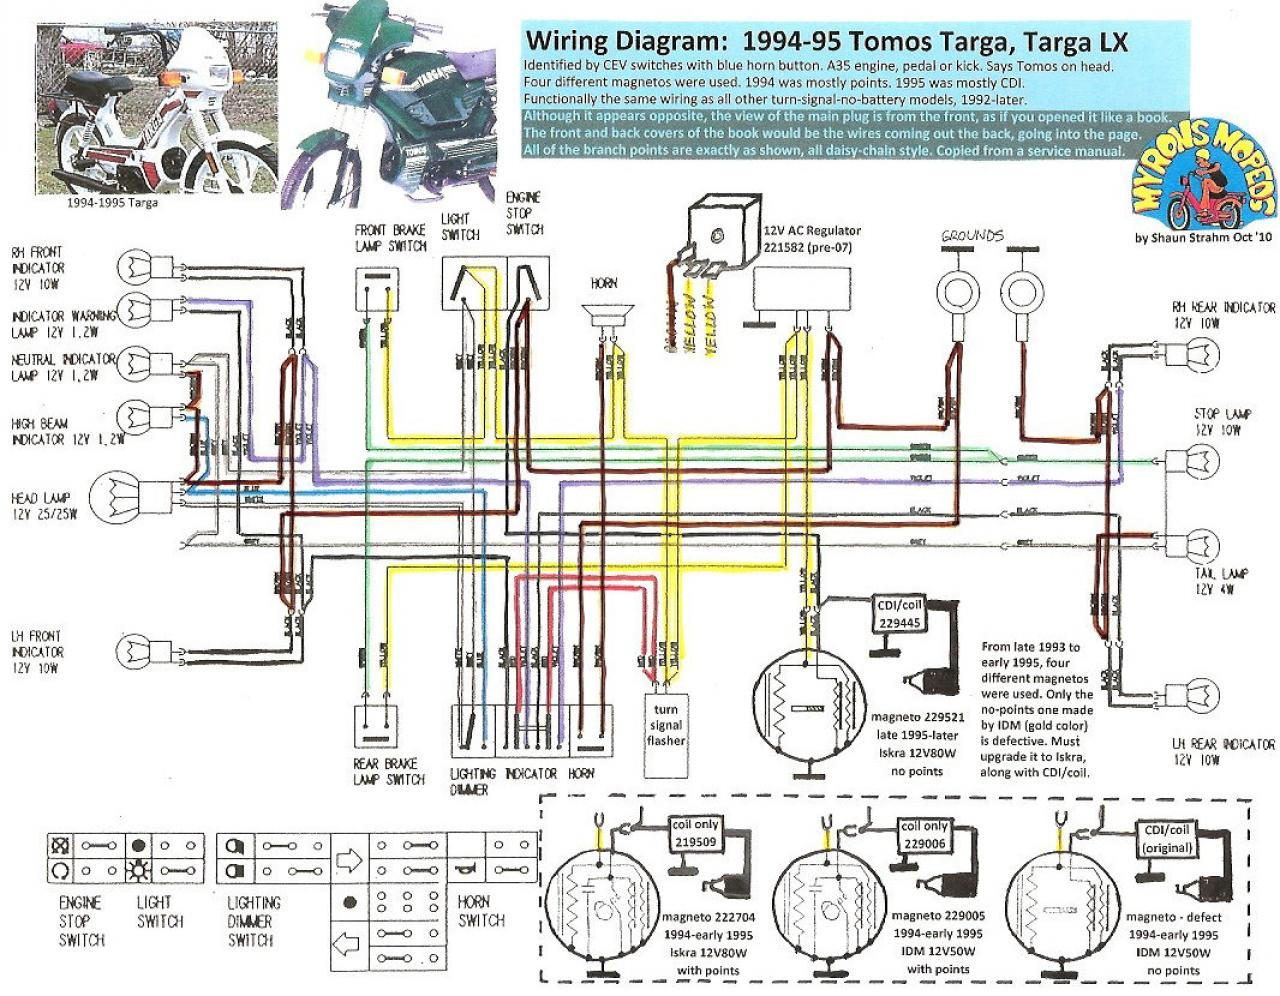 derbi senda 50 electric diagram somurich com rh somurich com derbi senda drd wiring diagram derbi senda electrical diagram